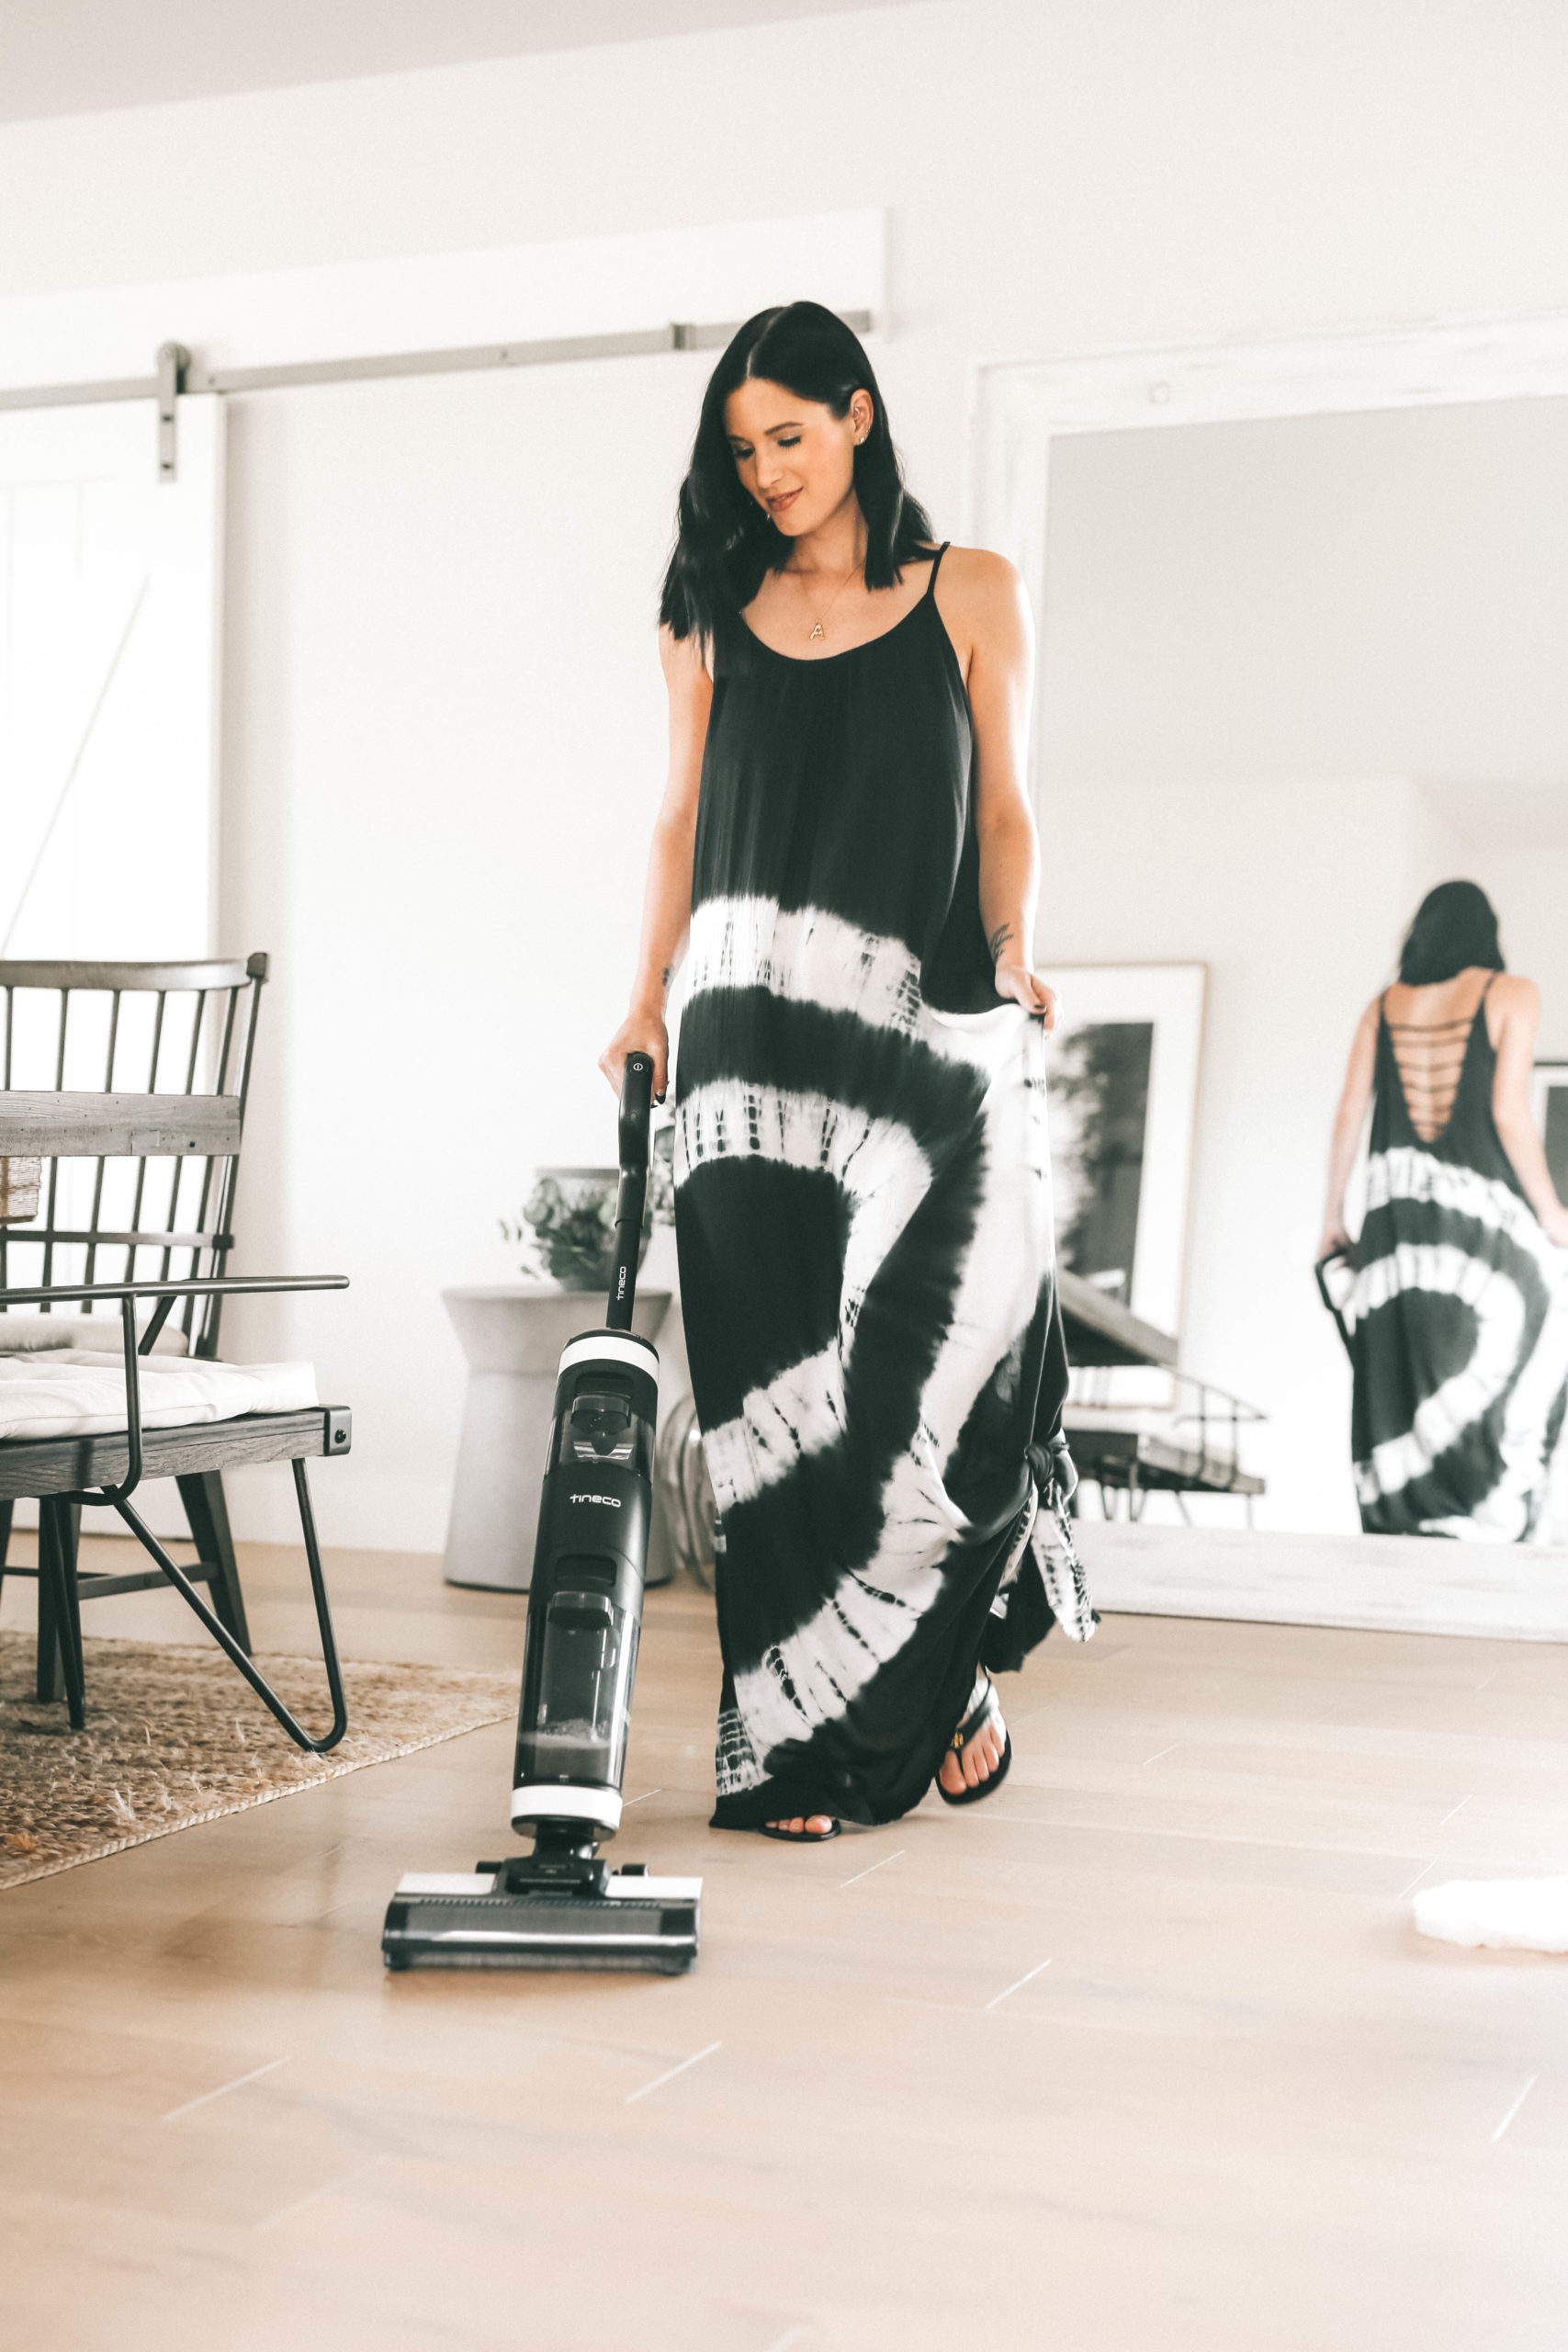 Tineco Floor One S3 by popular Austin lifestyle blog, Dressed to Kill: image of a woman wearing a black and white tie dye maxi and using a Tineco Floor One S3 vacuum in her kitchen.